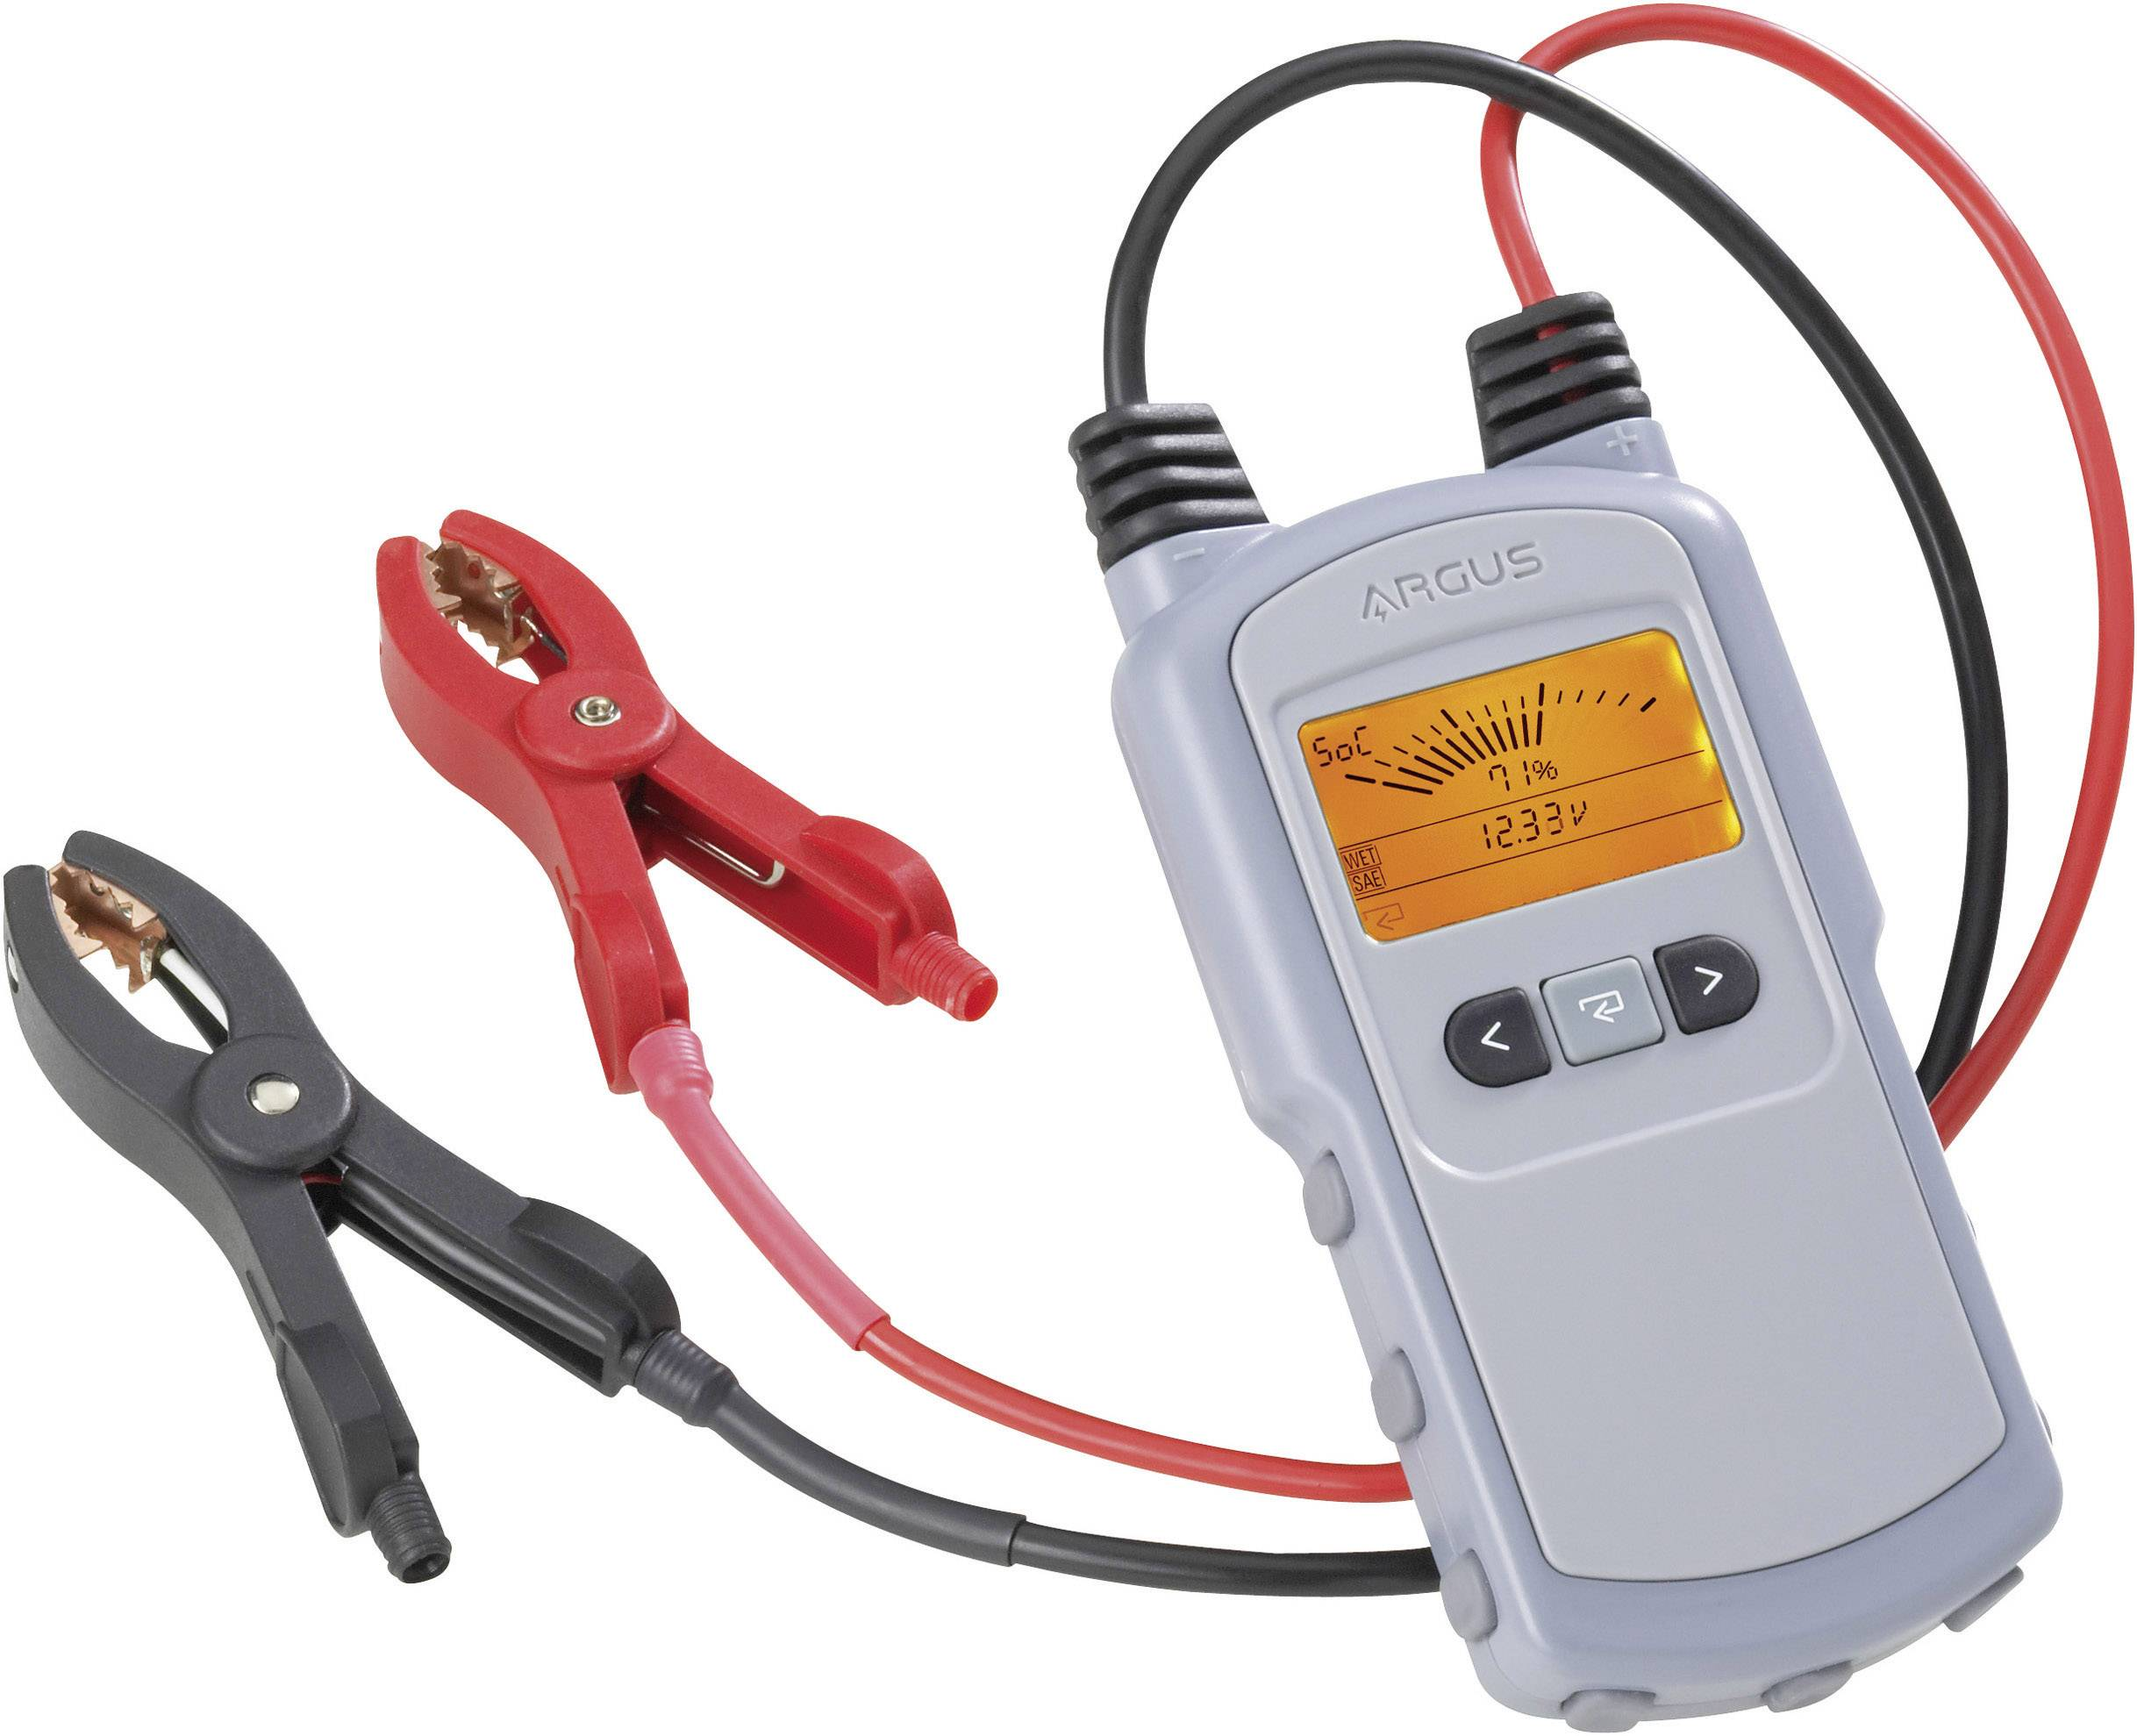 car battery tester 12 v aa350 argus 260 mm x 170 from conrad rh conrad electronic co uk